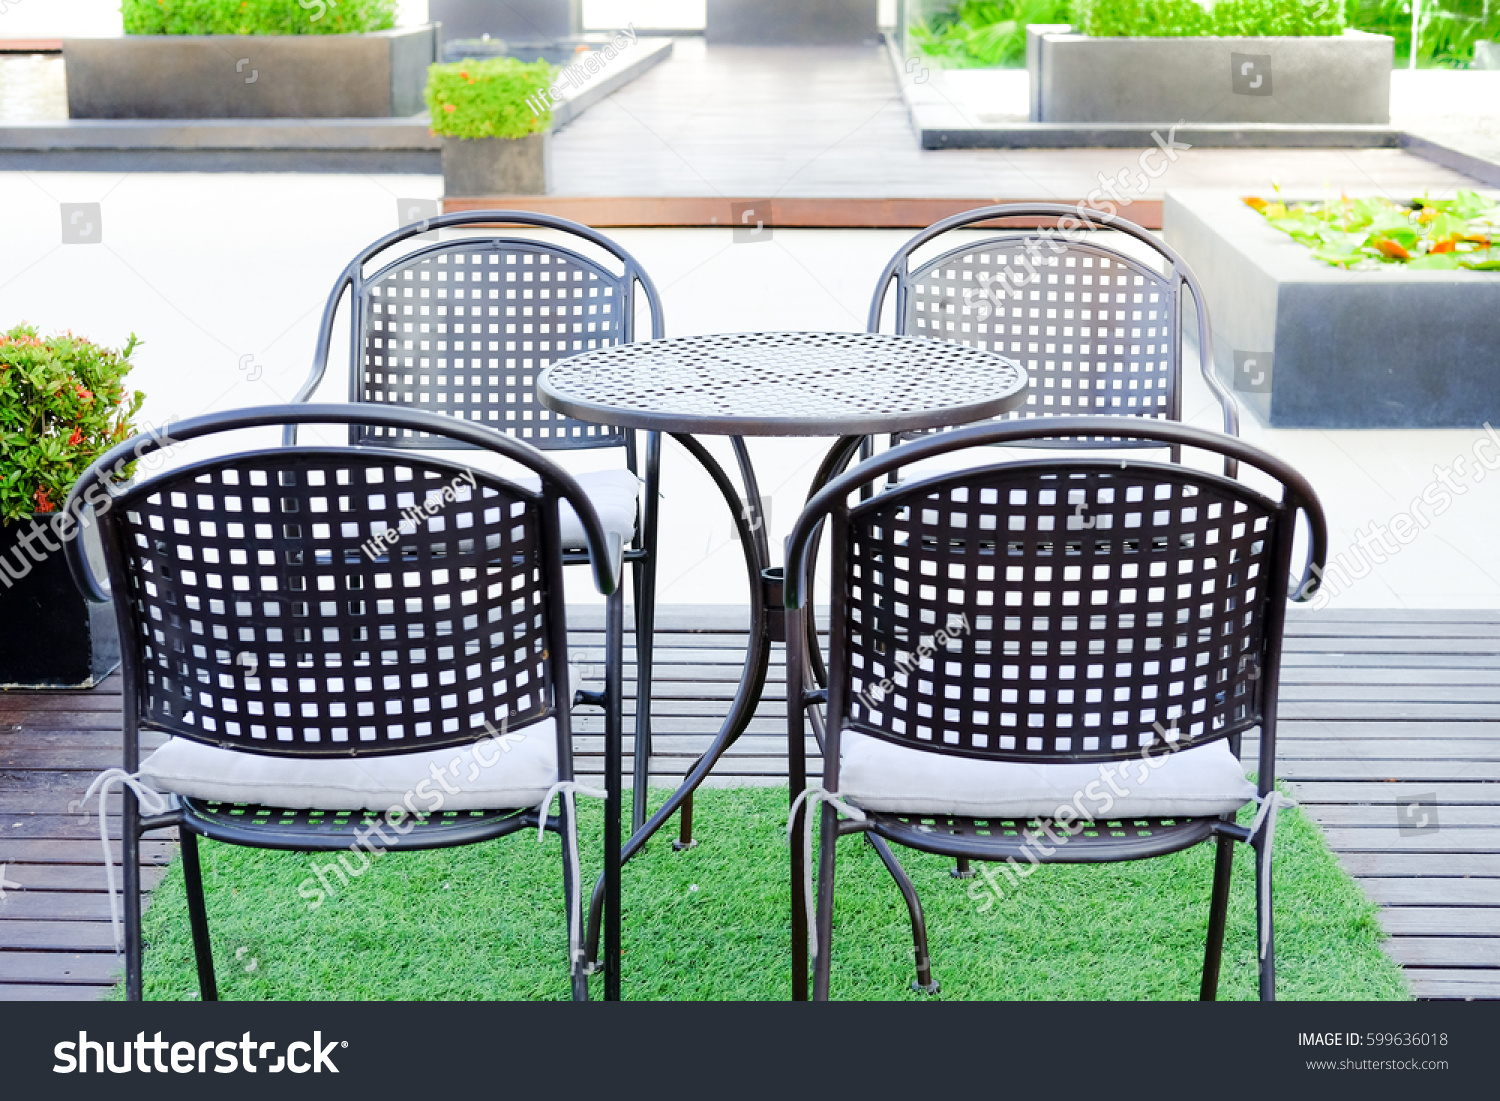 Black Chairs Desk Outdoor Garden Stock Photo 599636018. Slim Table. Tall White Table Lamps. Average Coffee Table Height. Outdoor Side Tables. Auto Desk 360. Fabric Coffee Table. Banquet Table Skirts. Desks For Office